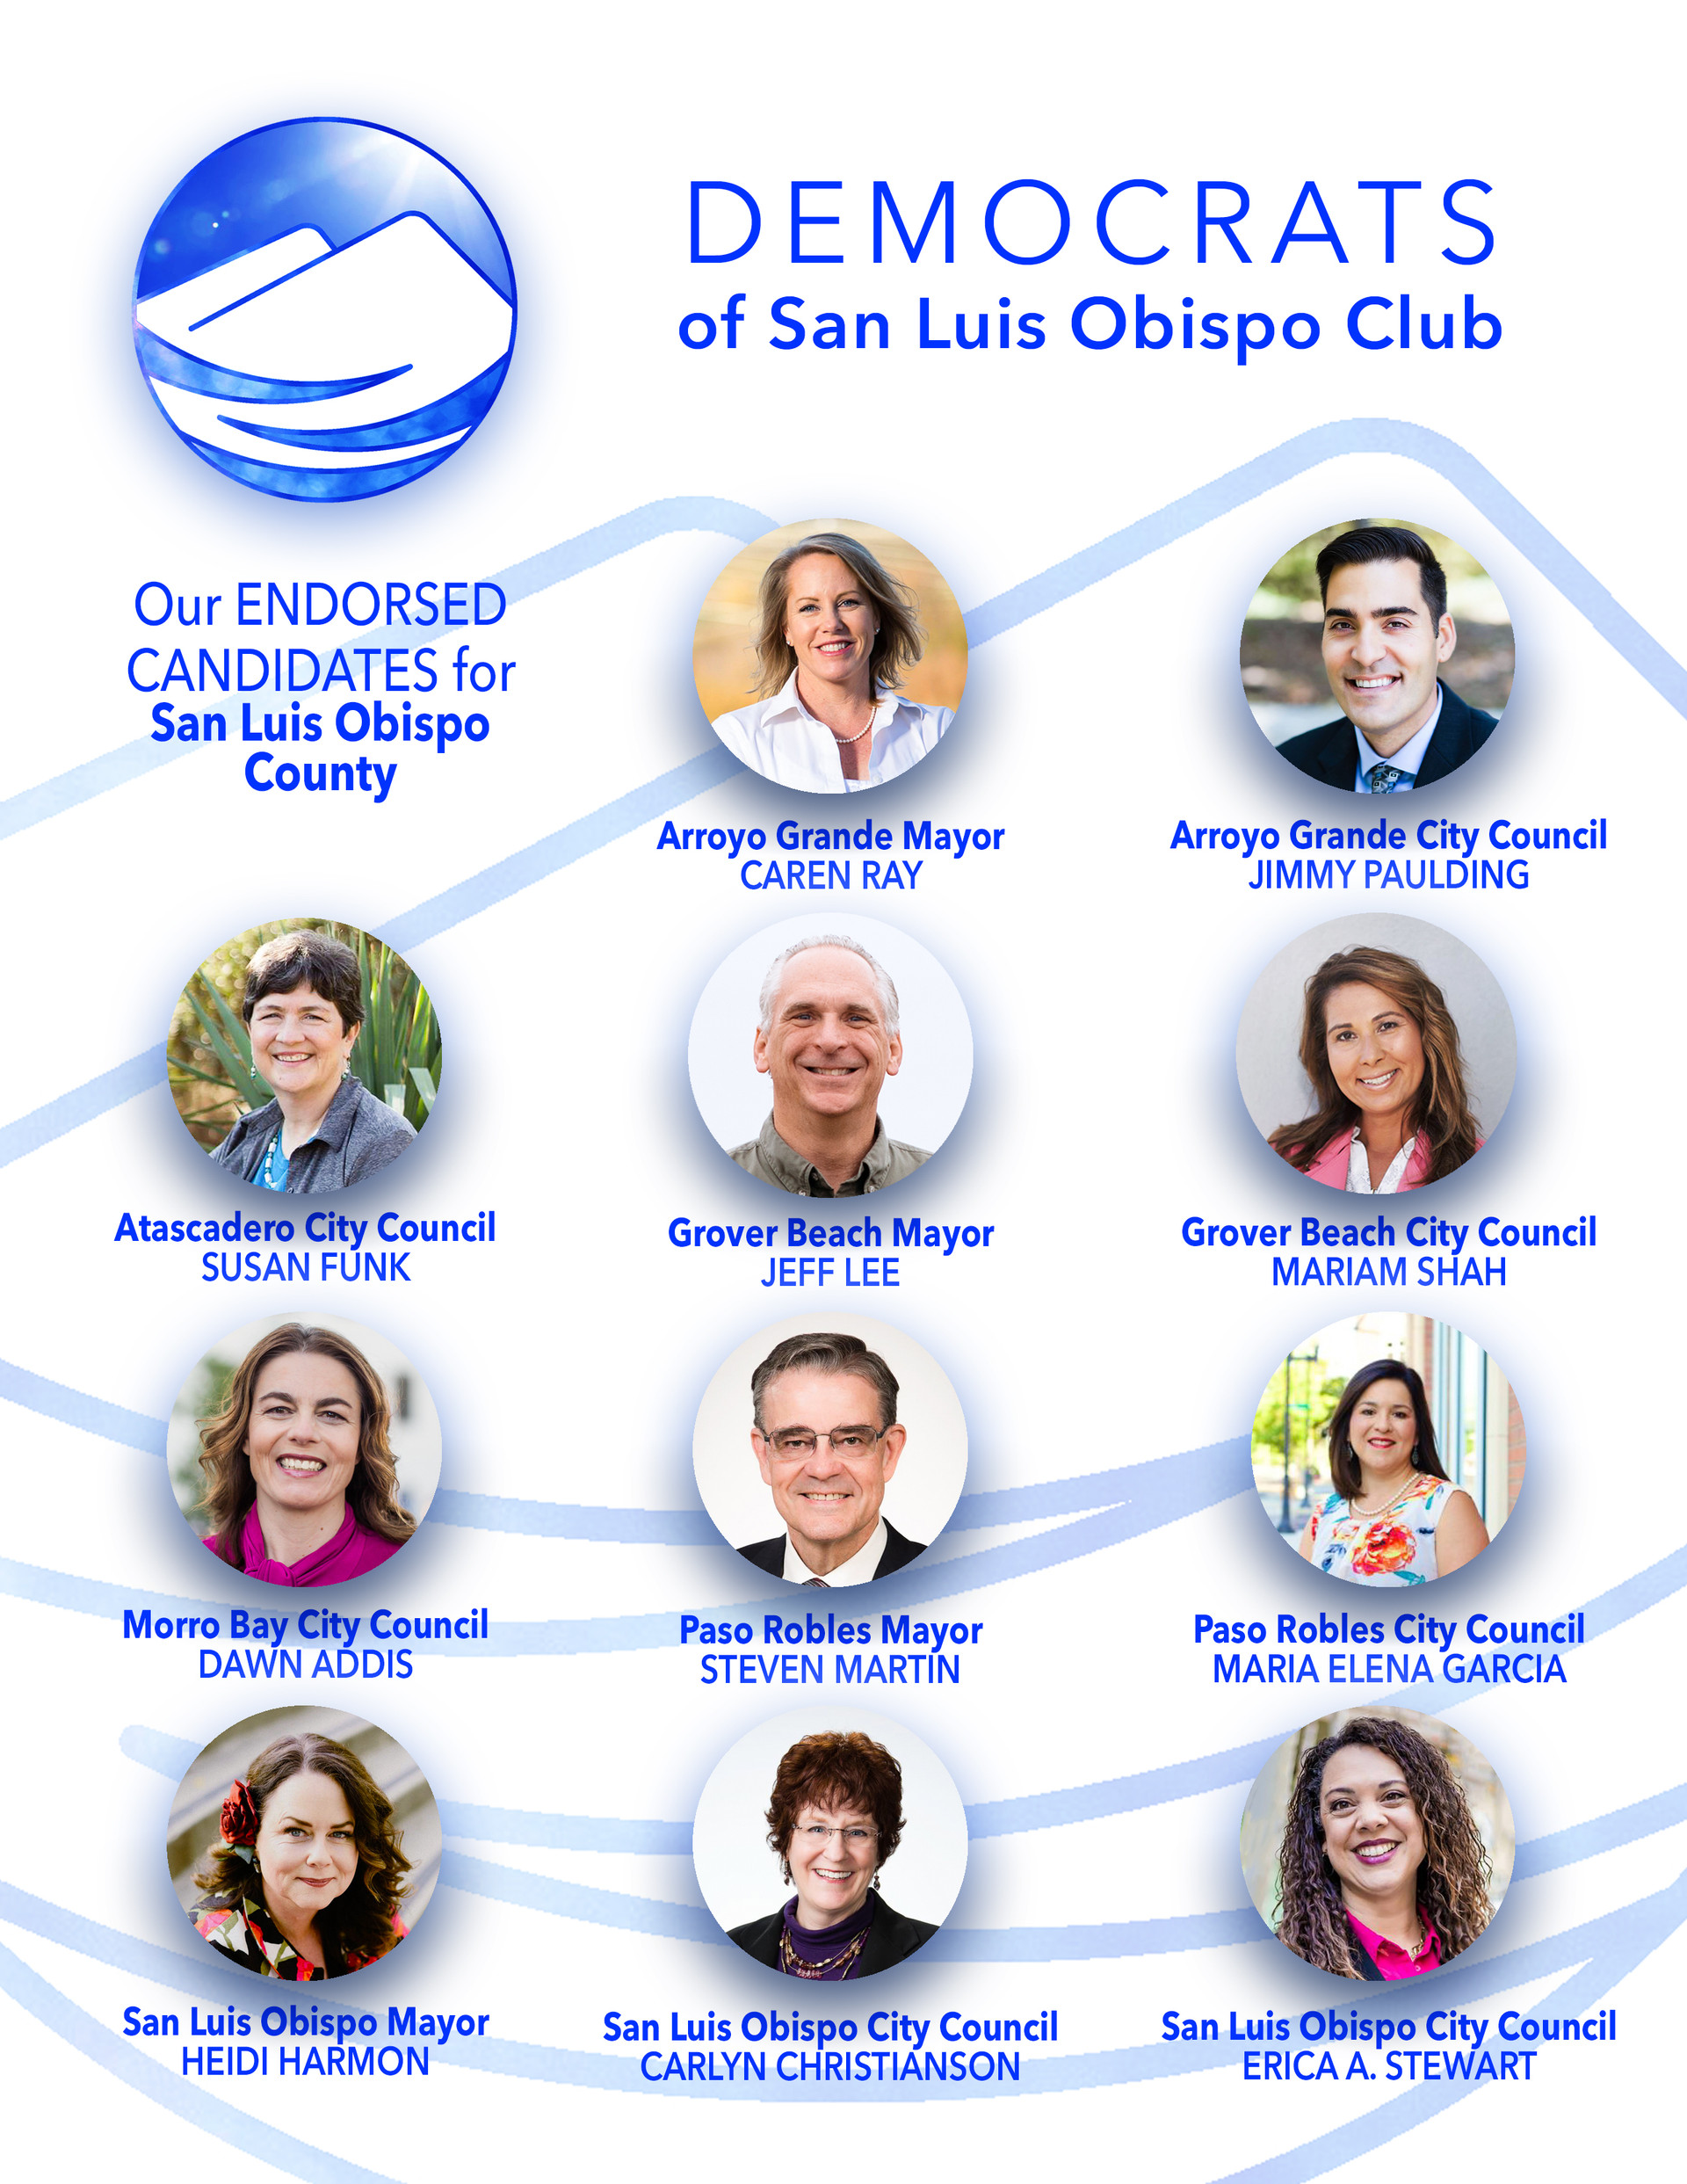 Democrats of San Luis Obispo 2018 Endorsed Candidates for SLO County